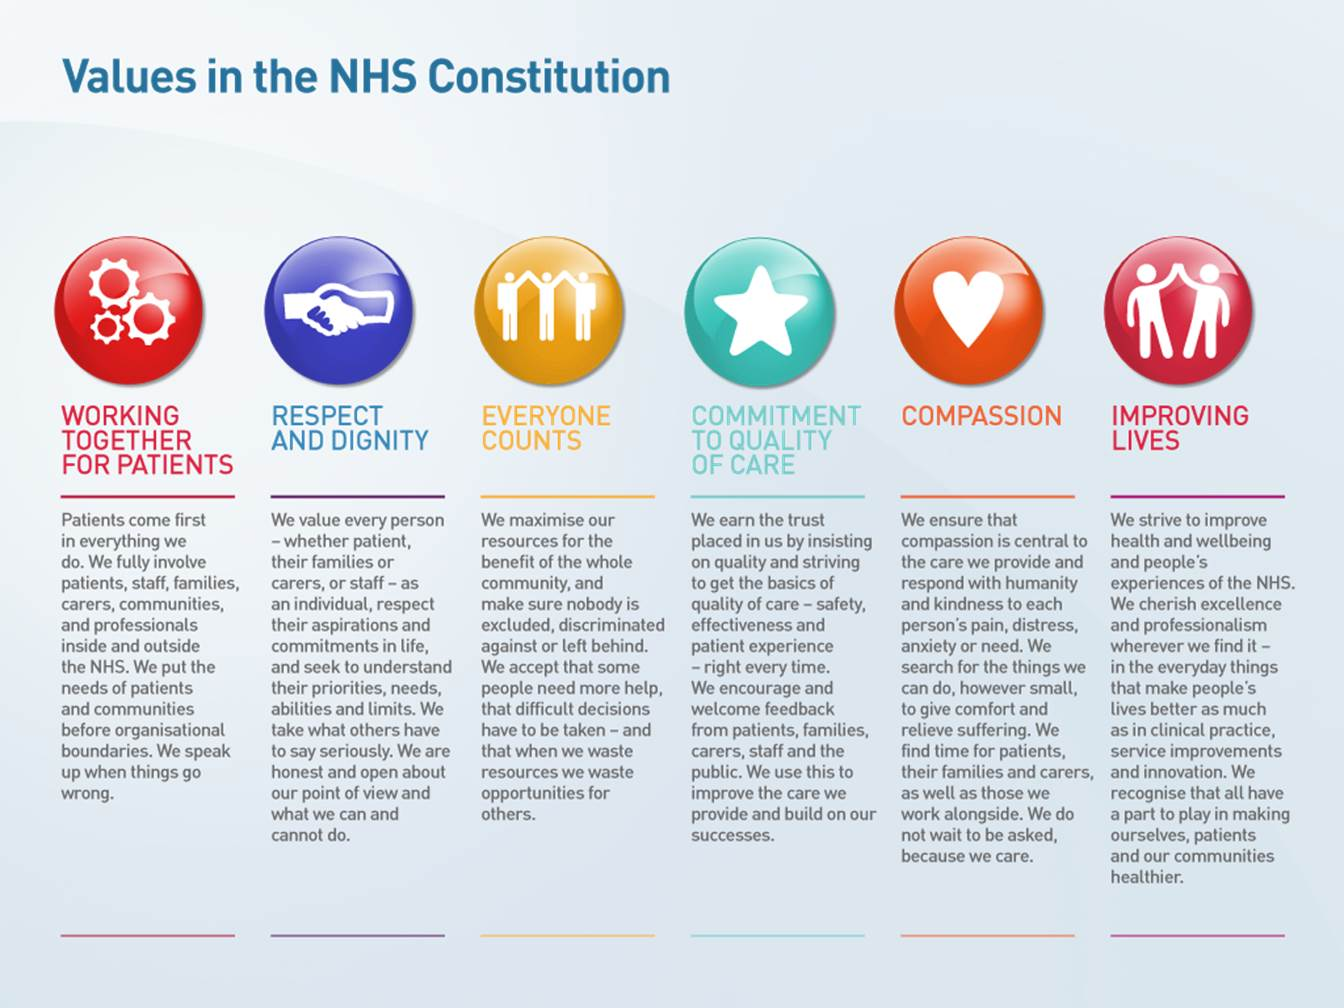 occupational therapy bsc brunel university london individual organisations will develop and build upon these values tailoring them to their local needs the nhs values provide common ground for